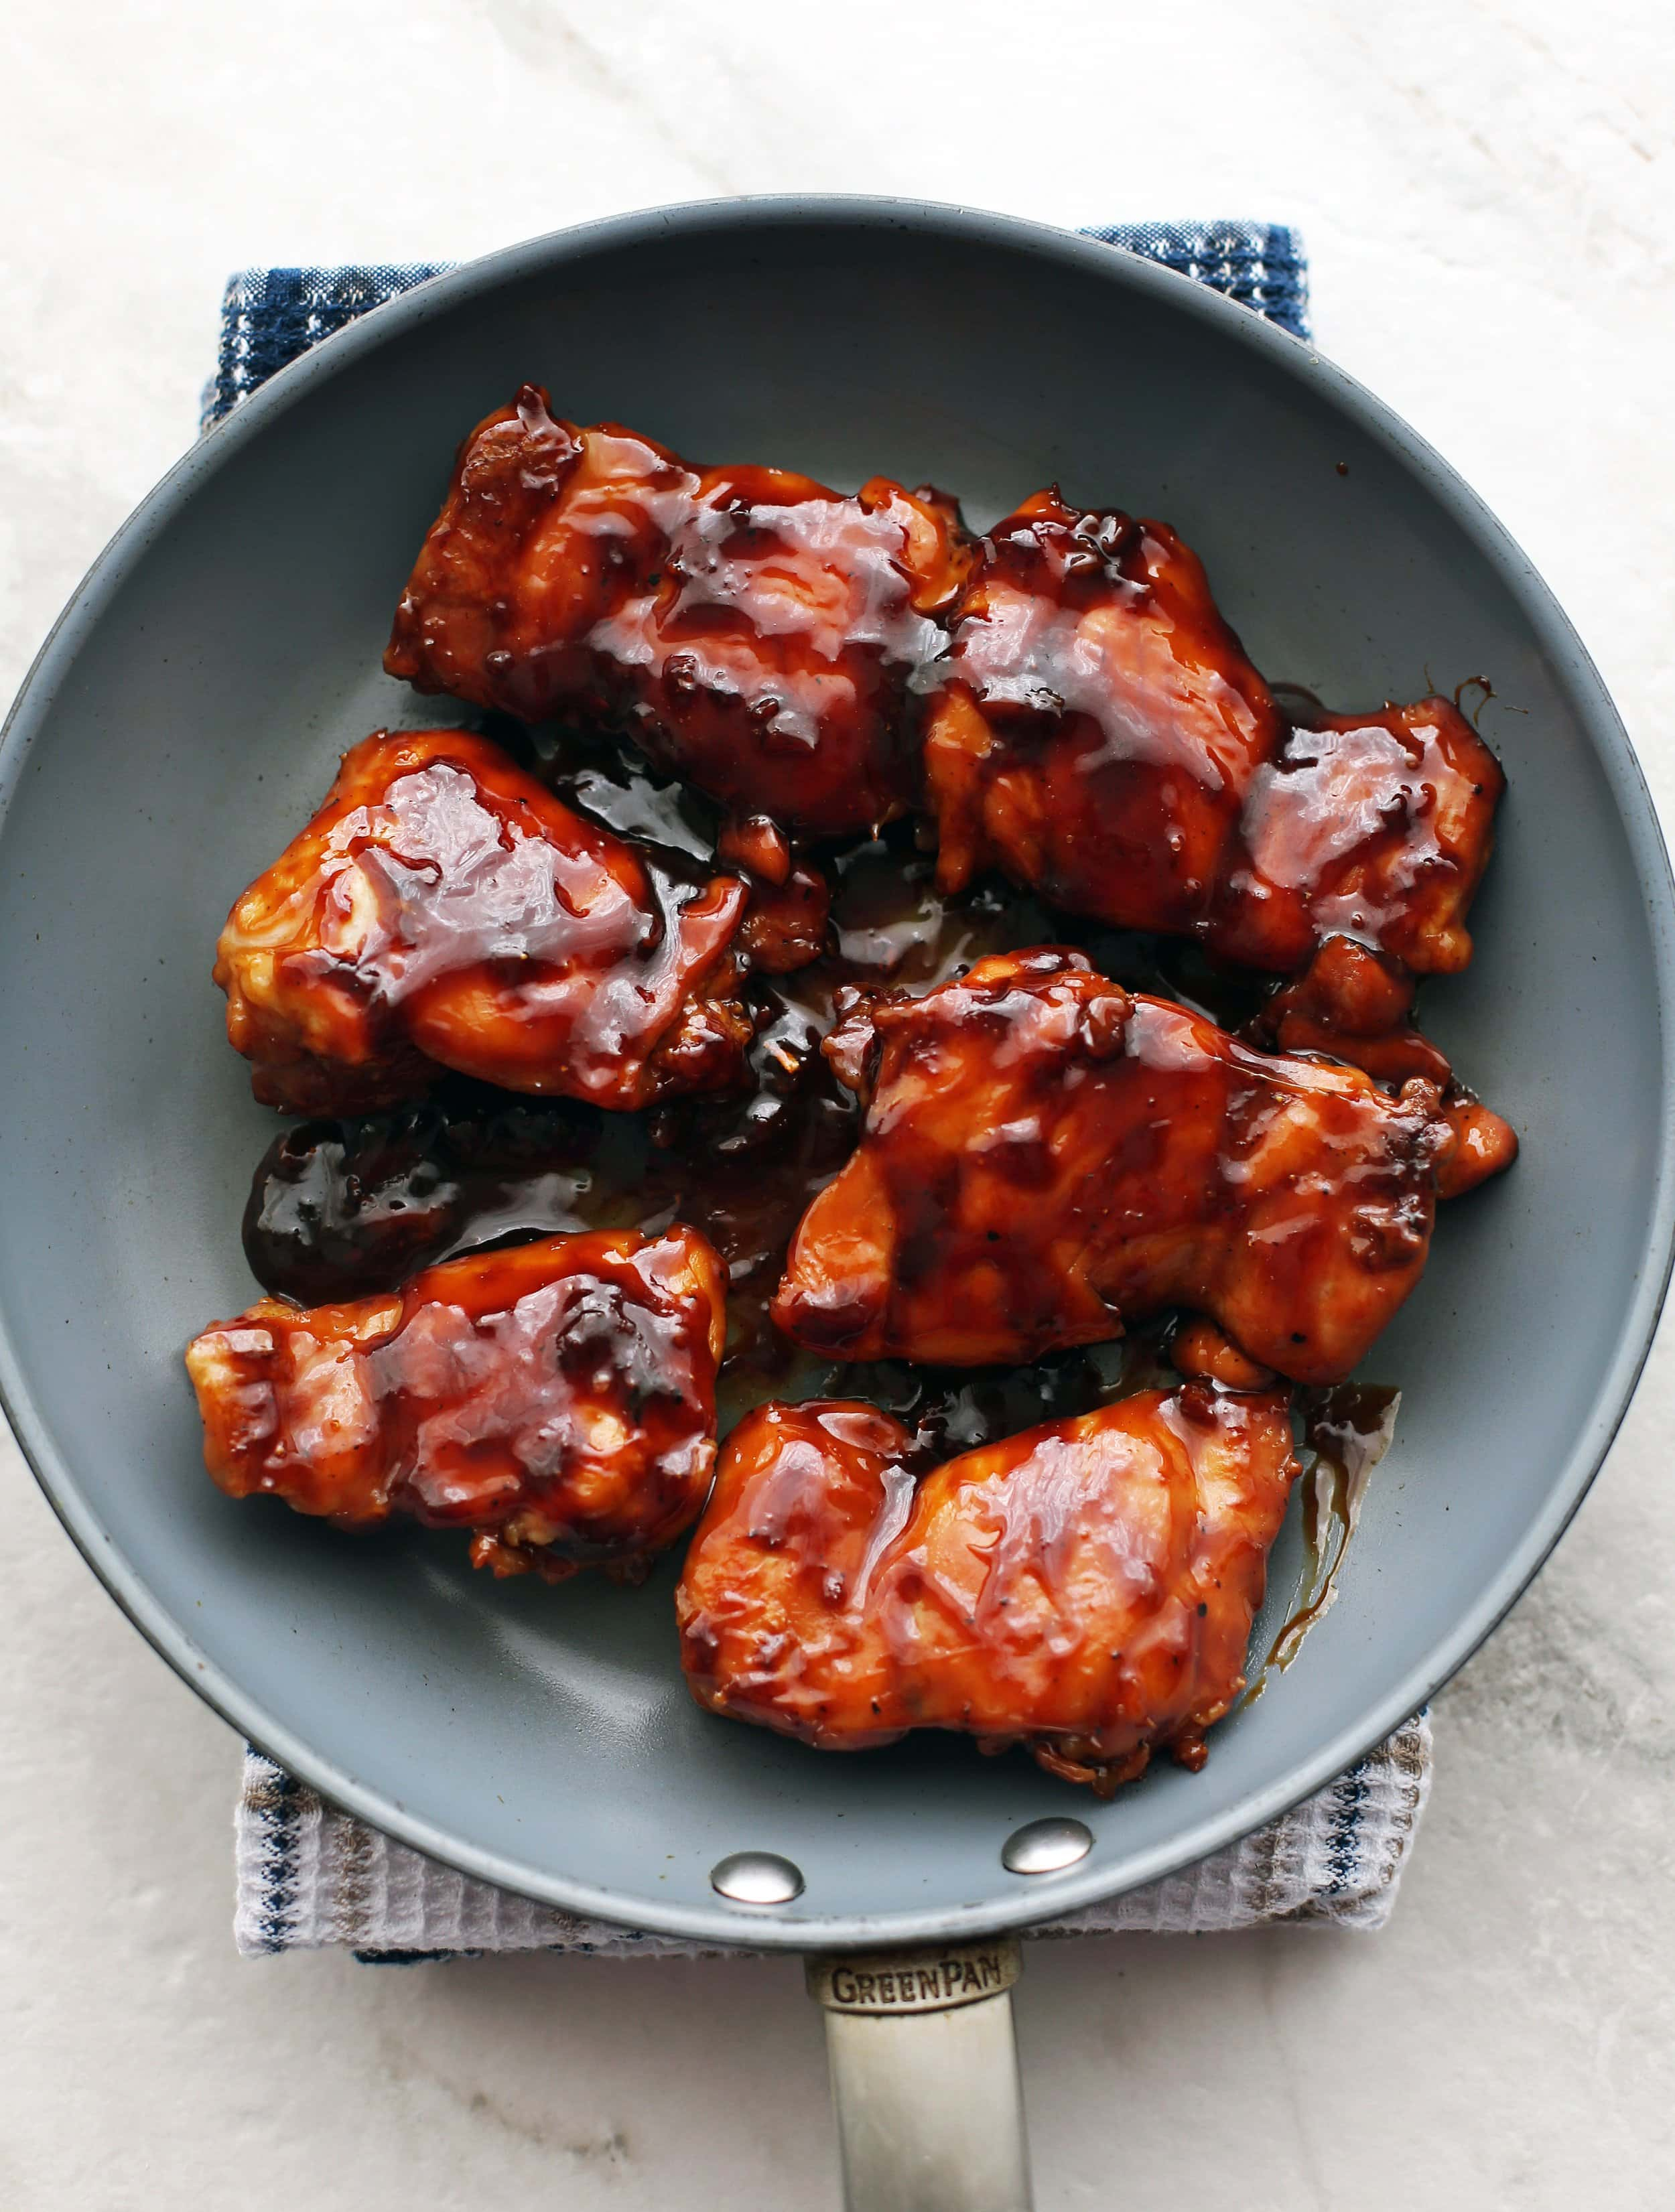 Six pan-cooked chicken thighs covered with teriyaki sauce in a skillet.